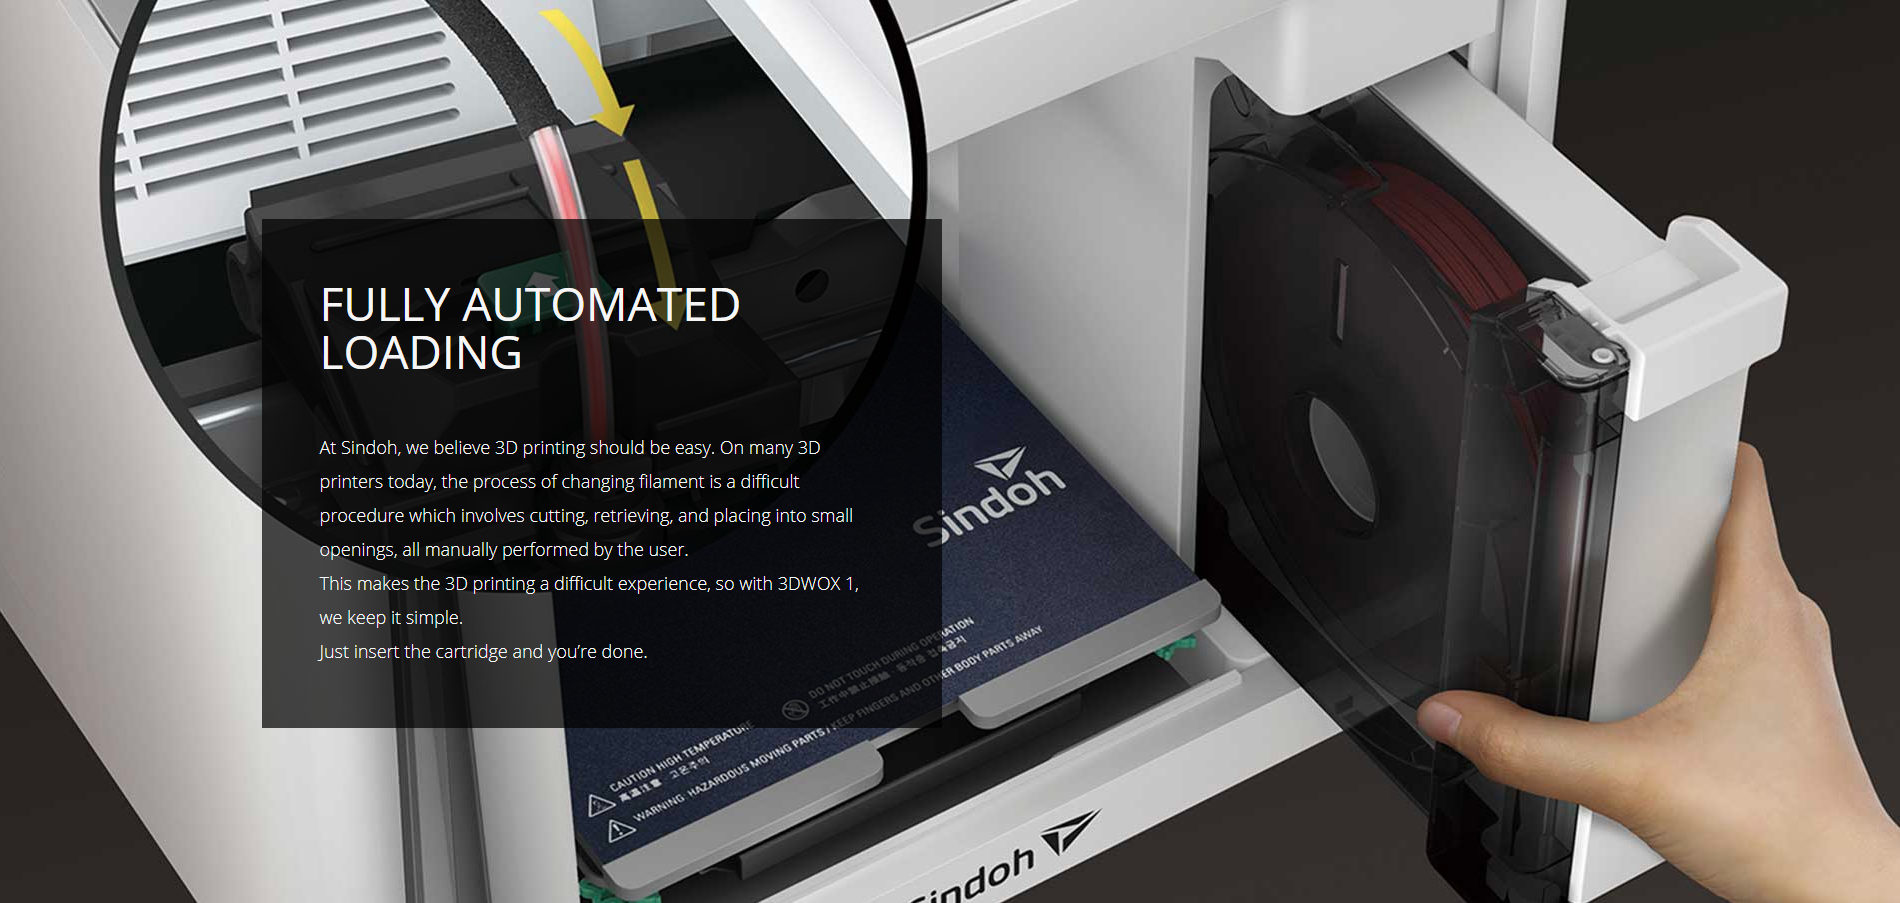 Sindoh 3DWOX 1 3D Printer wow3dprinter